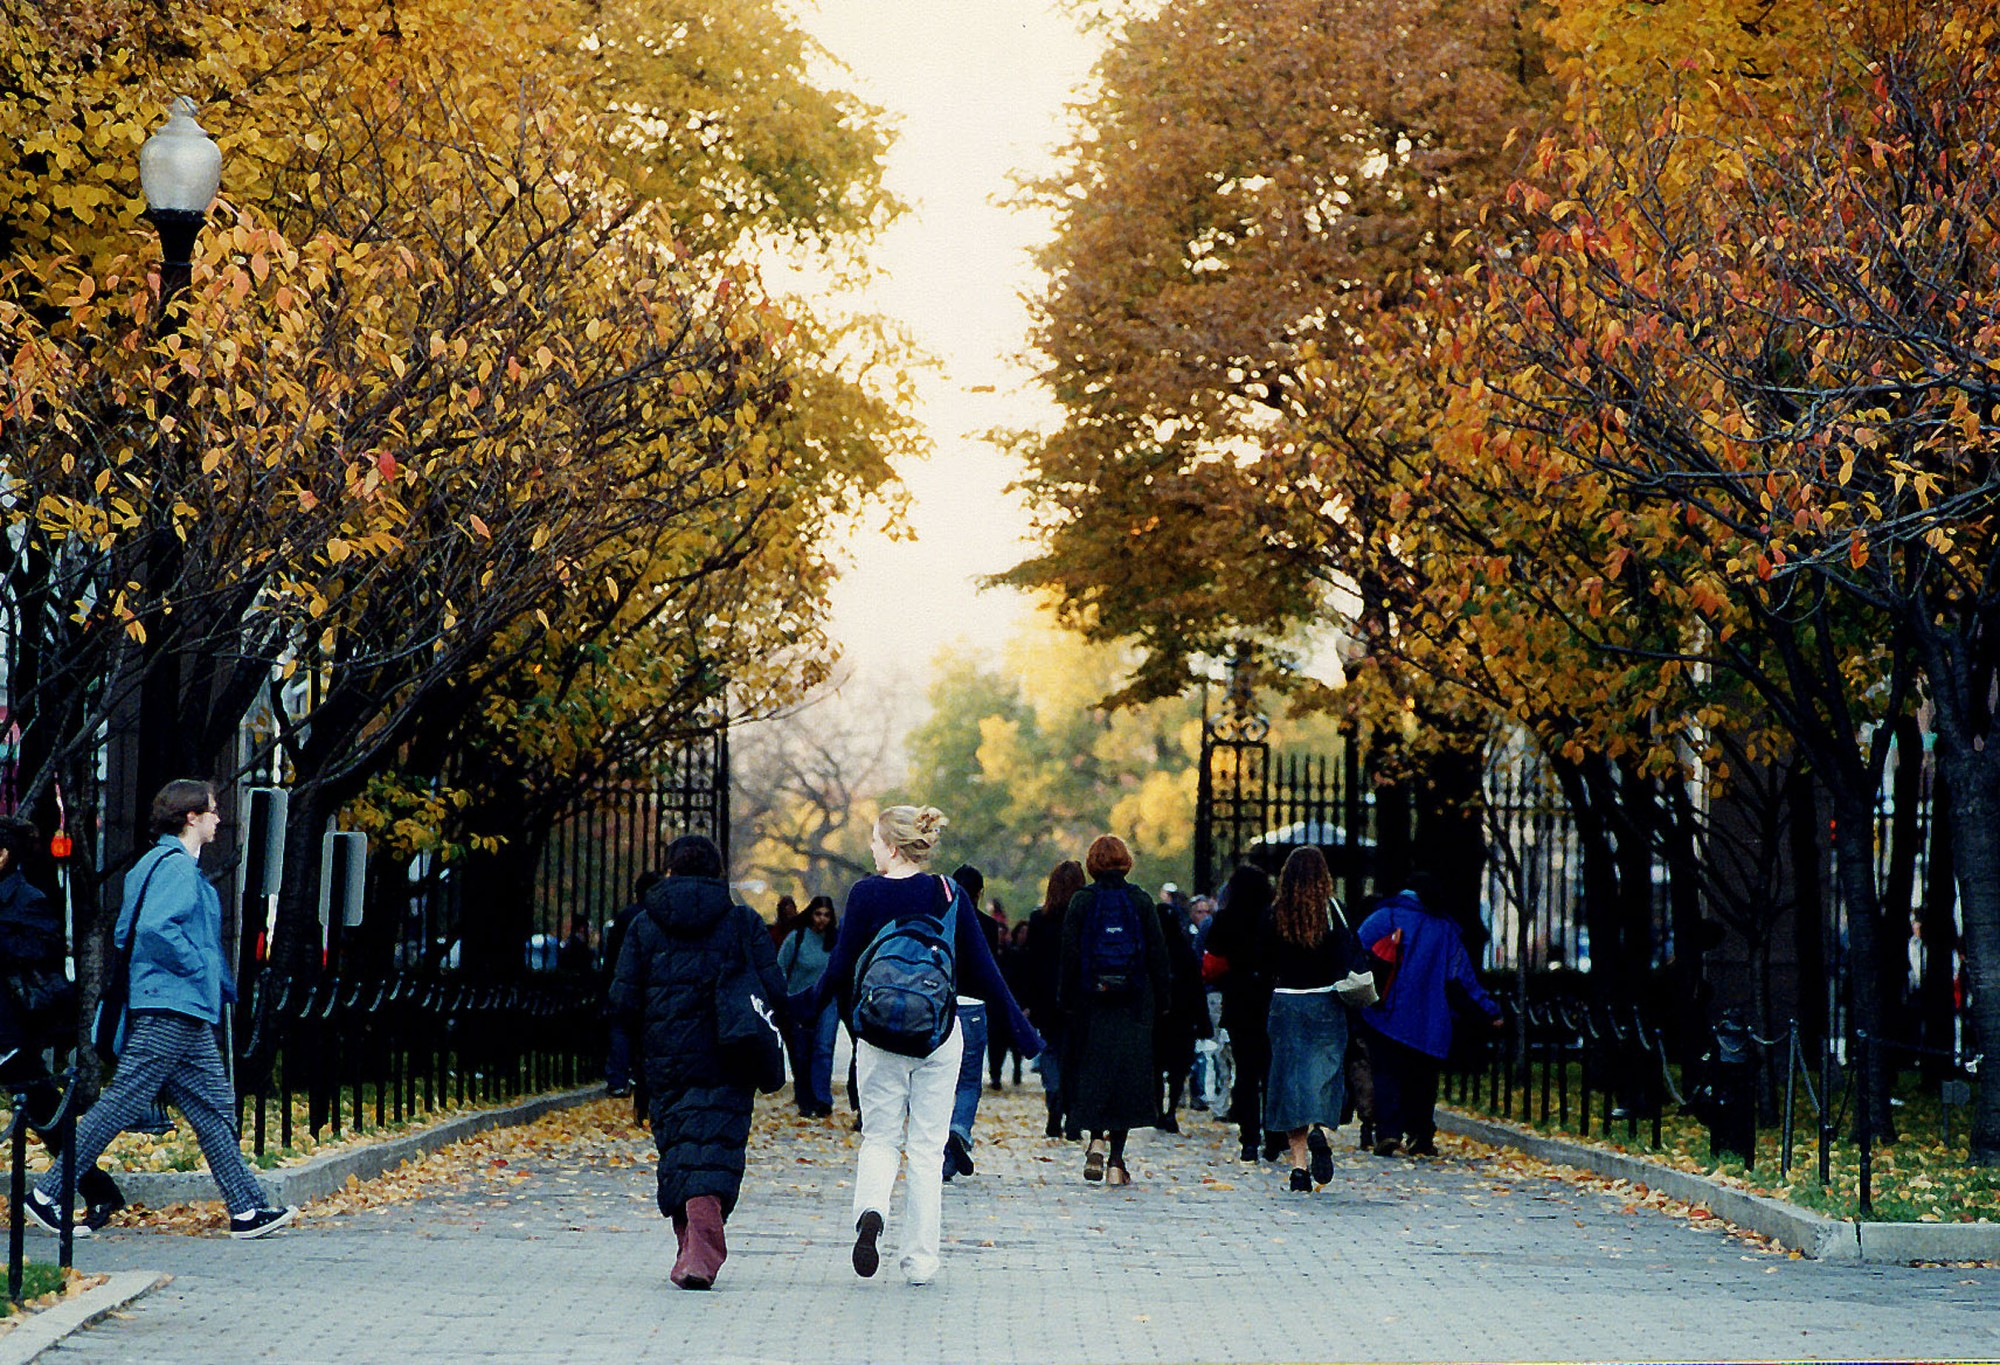 People walking down a wide pathway during autumn. Trees with golden leaves line either side of the path.